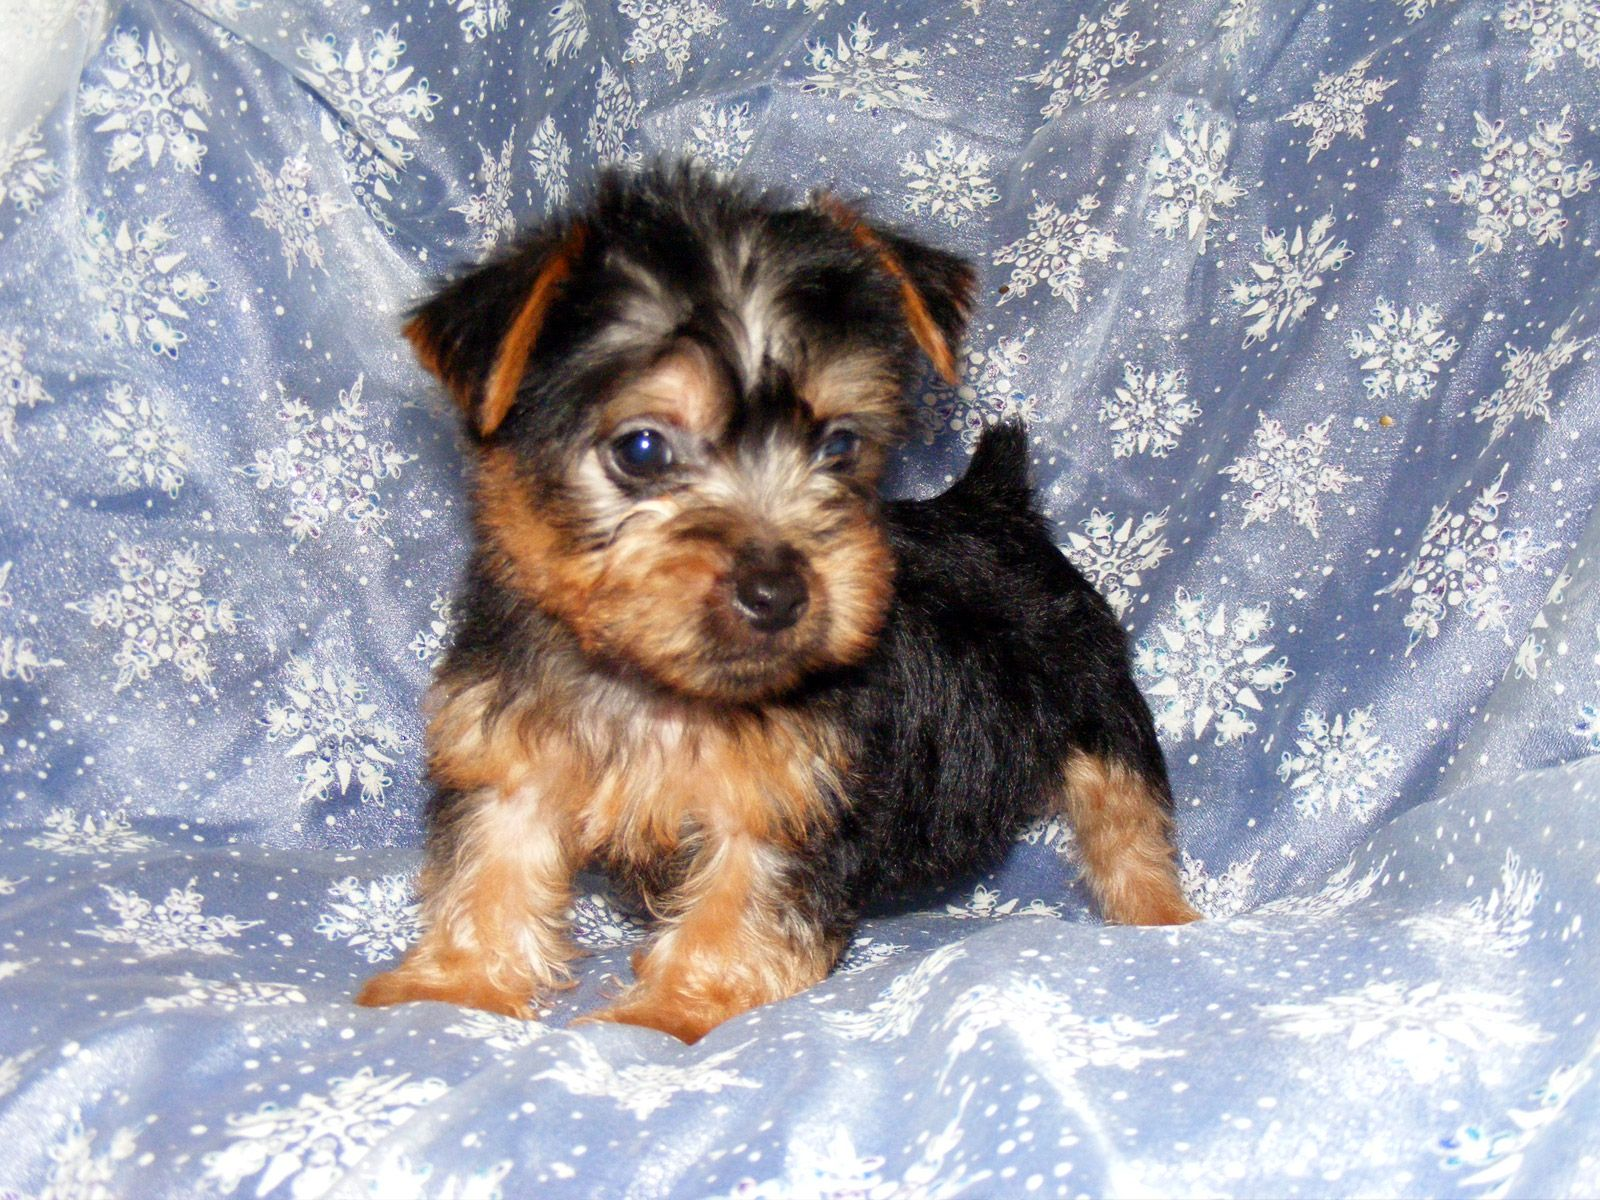 Dogs Wallpapers S Photo Puppy Small Dog Australian Silky Photo